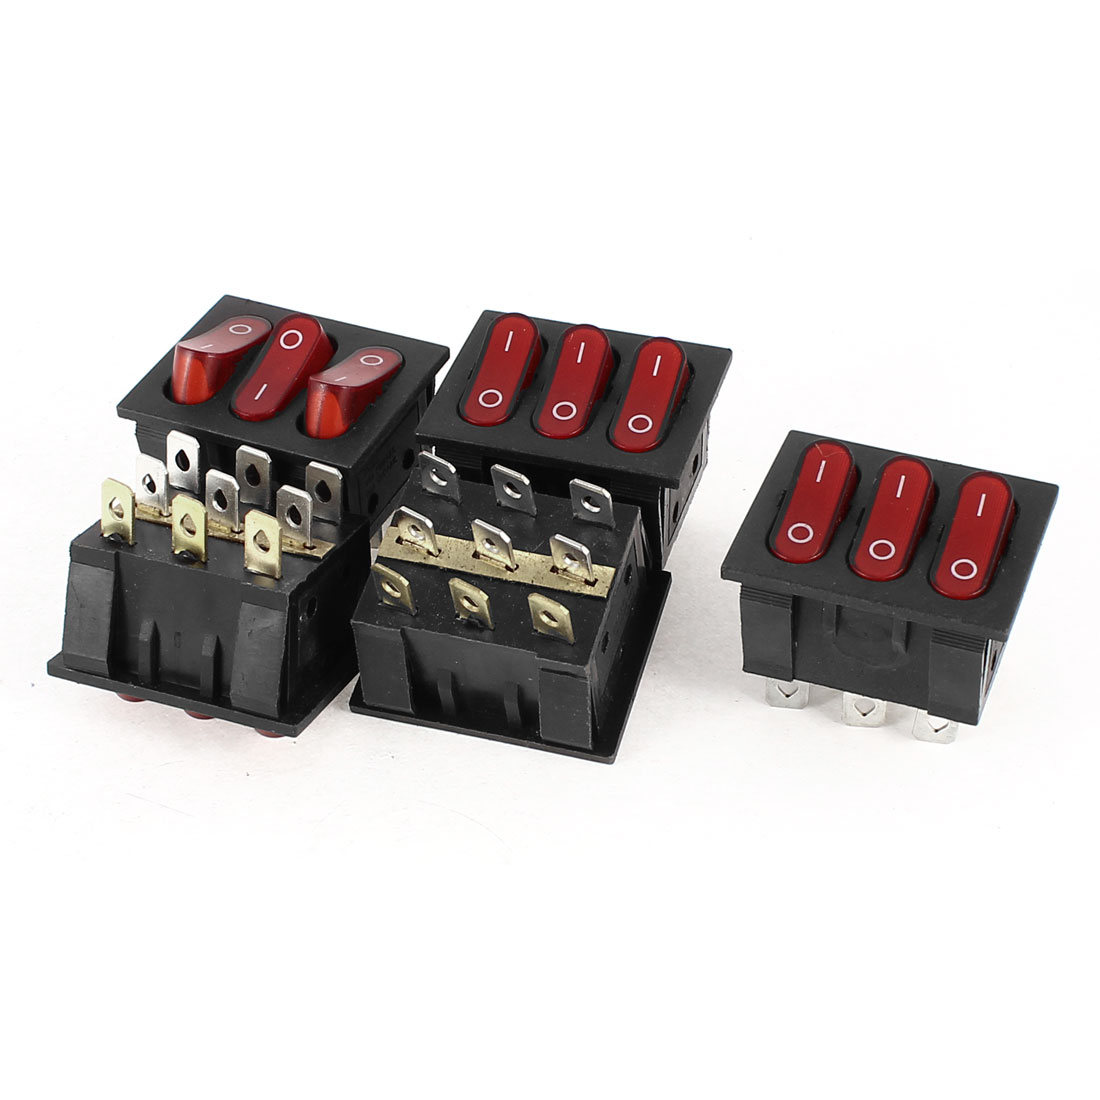 AC 250V 15A AC 125V 20A 6Pins Double SPST ON/OFF Red Lamp Rocker Switch 5 Pieces